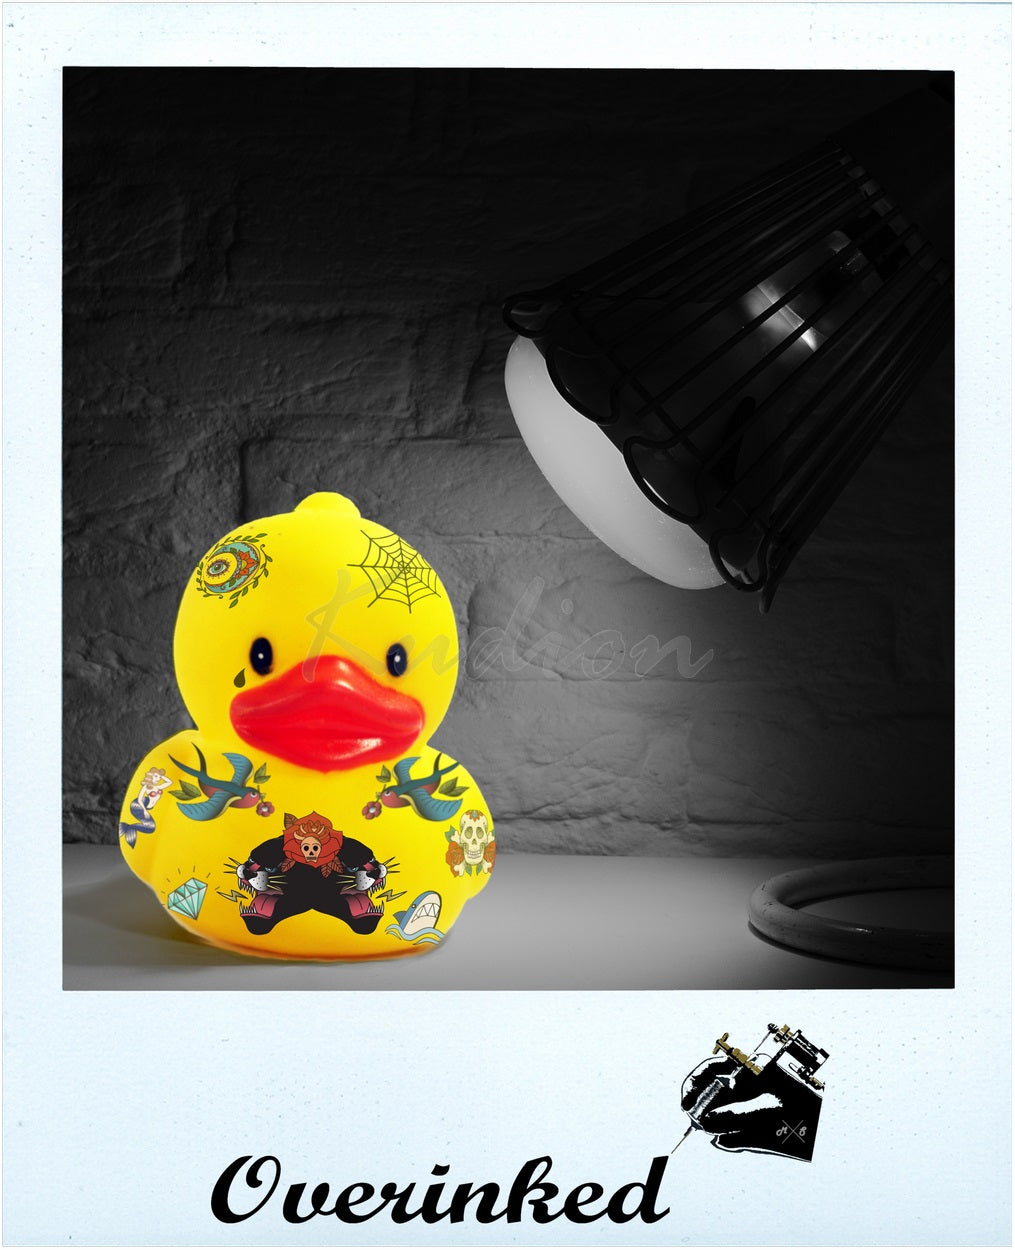 Kunst Tattoo - Digitale Kunst - Contemporary Art - Modern Art - Overinked - Fabian Stier - Ente - Quietscheentchen - Rubber duck - entchen - Ente - Duck - Rubber Duck - Art - Modern